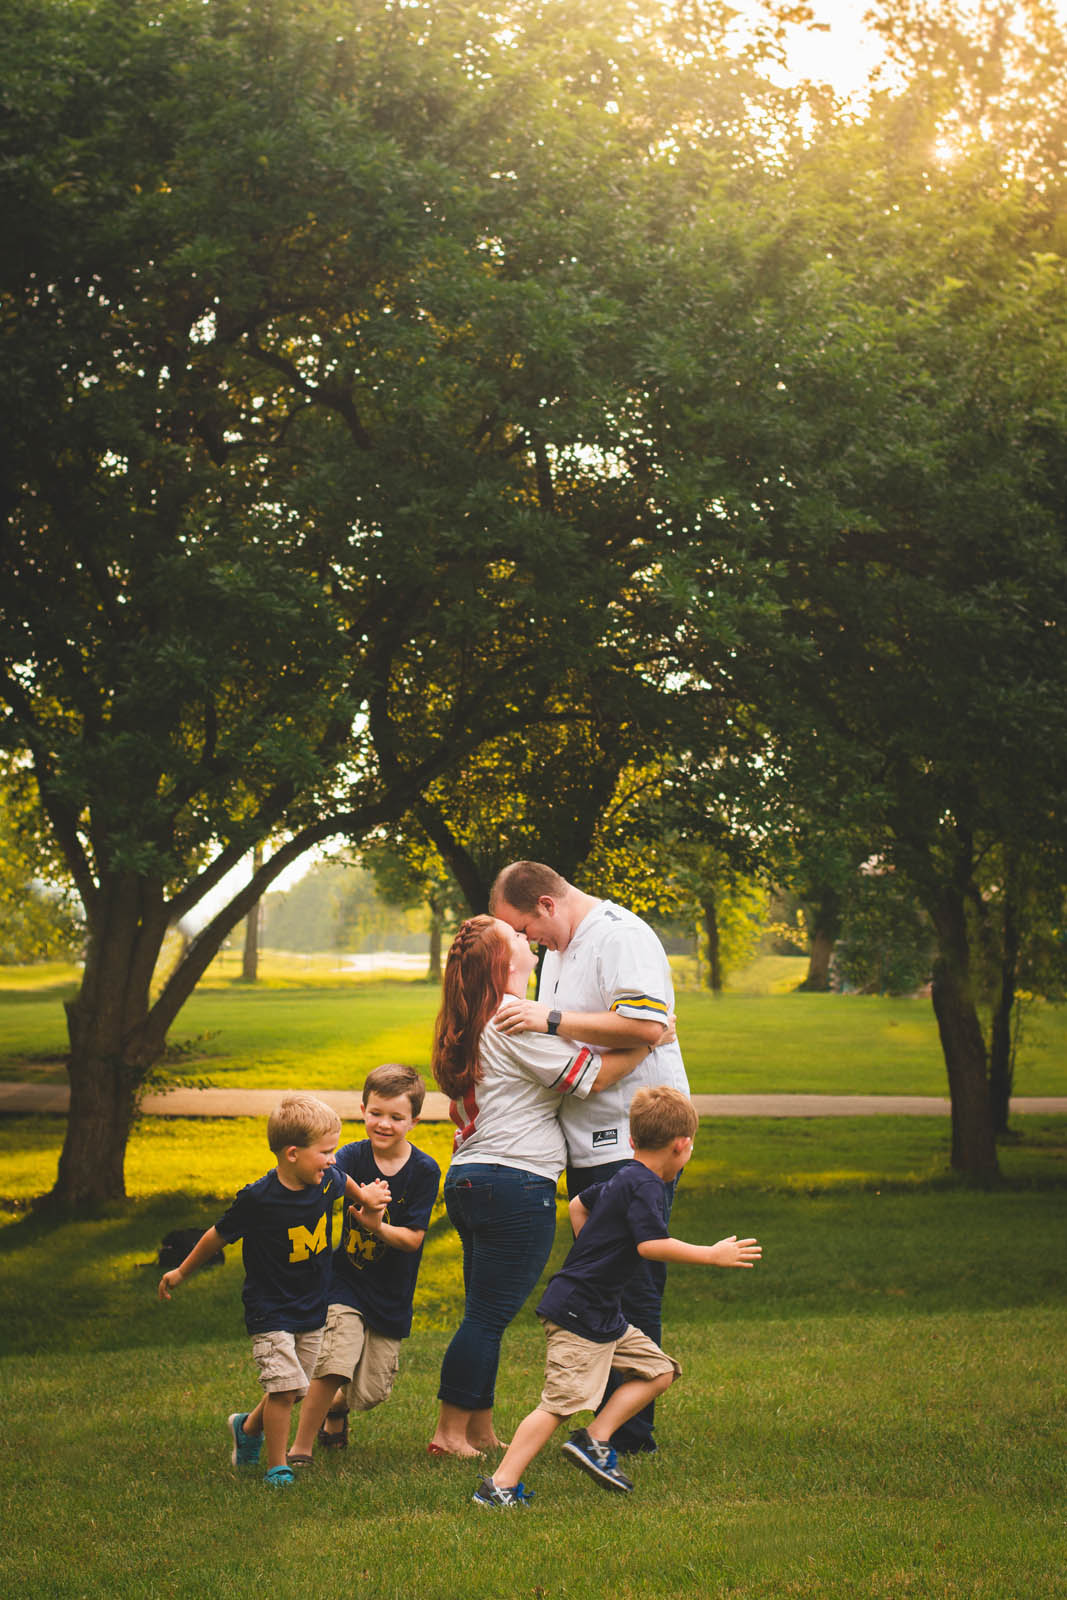 Family Portraits by Brooke Ashley Photography in Dayton Ohio